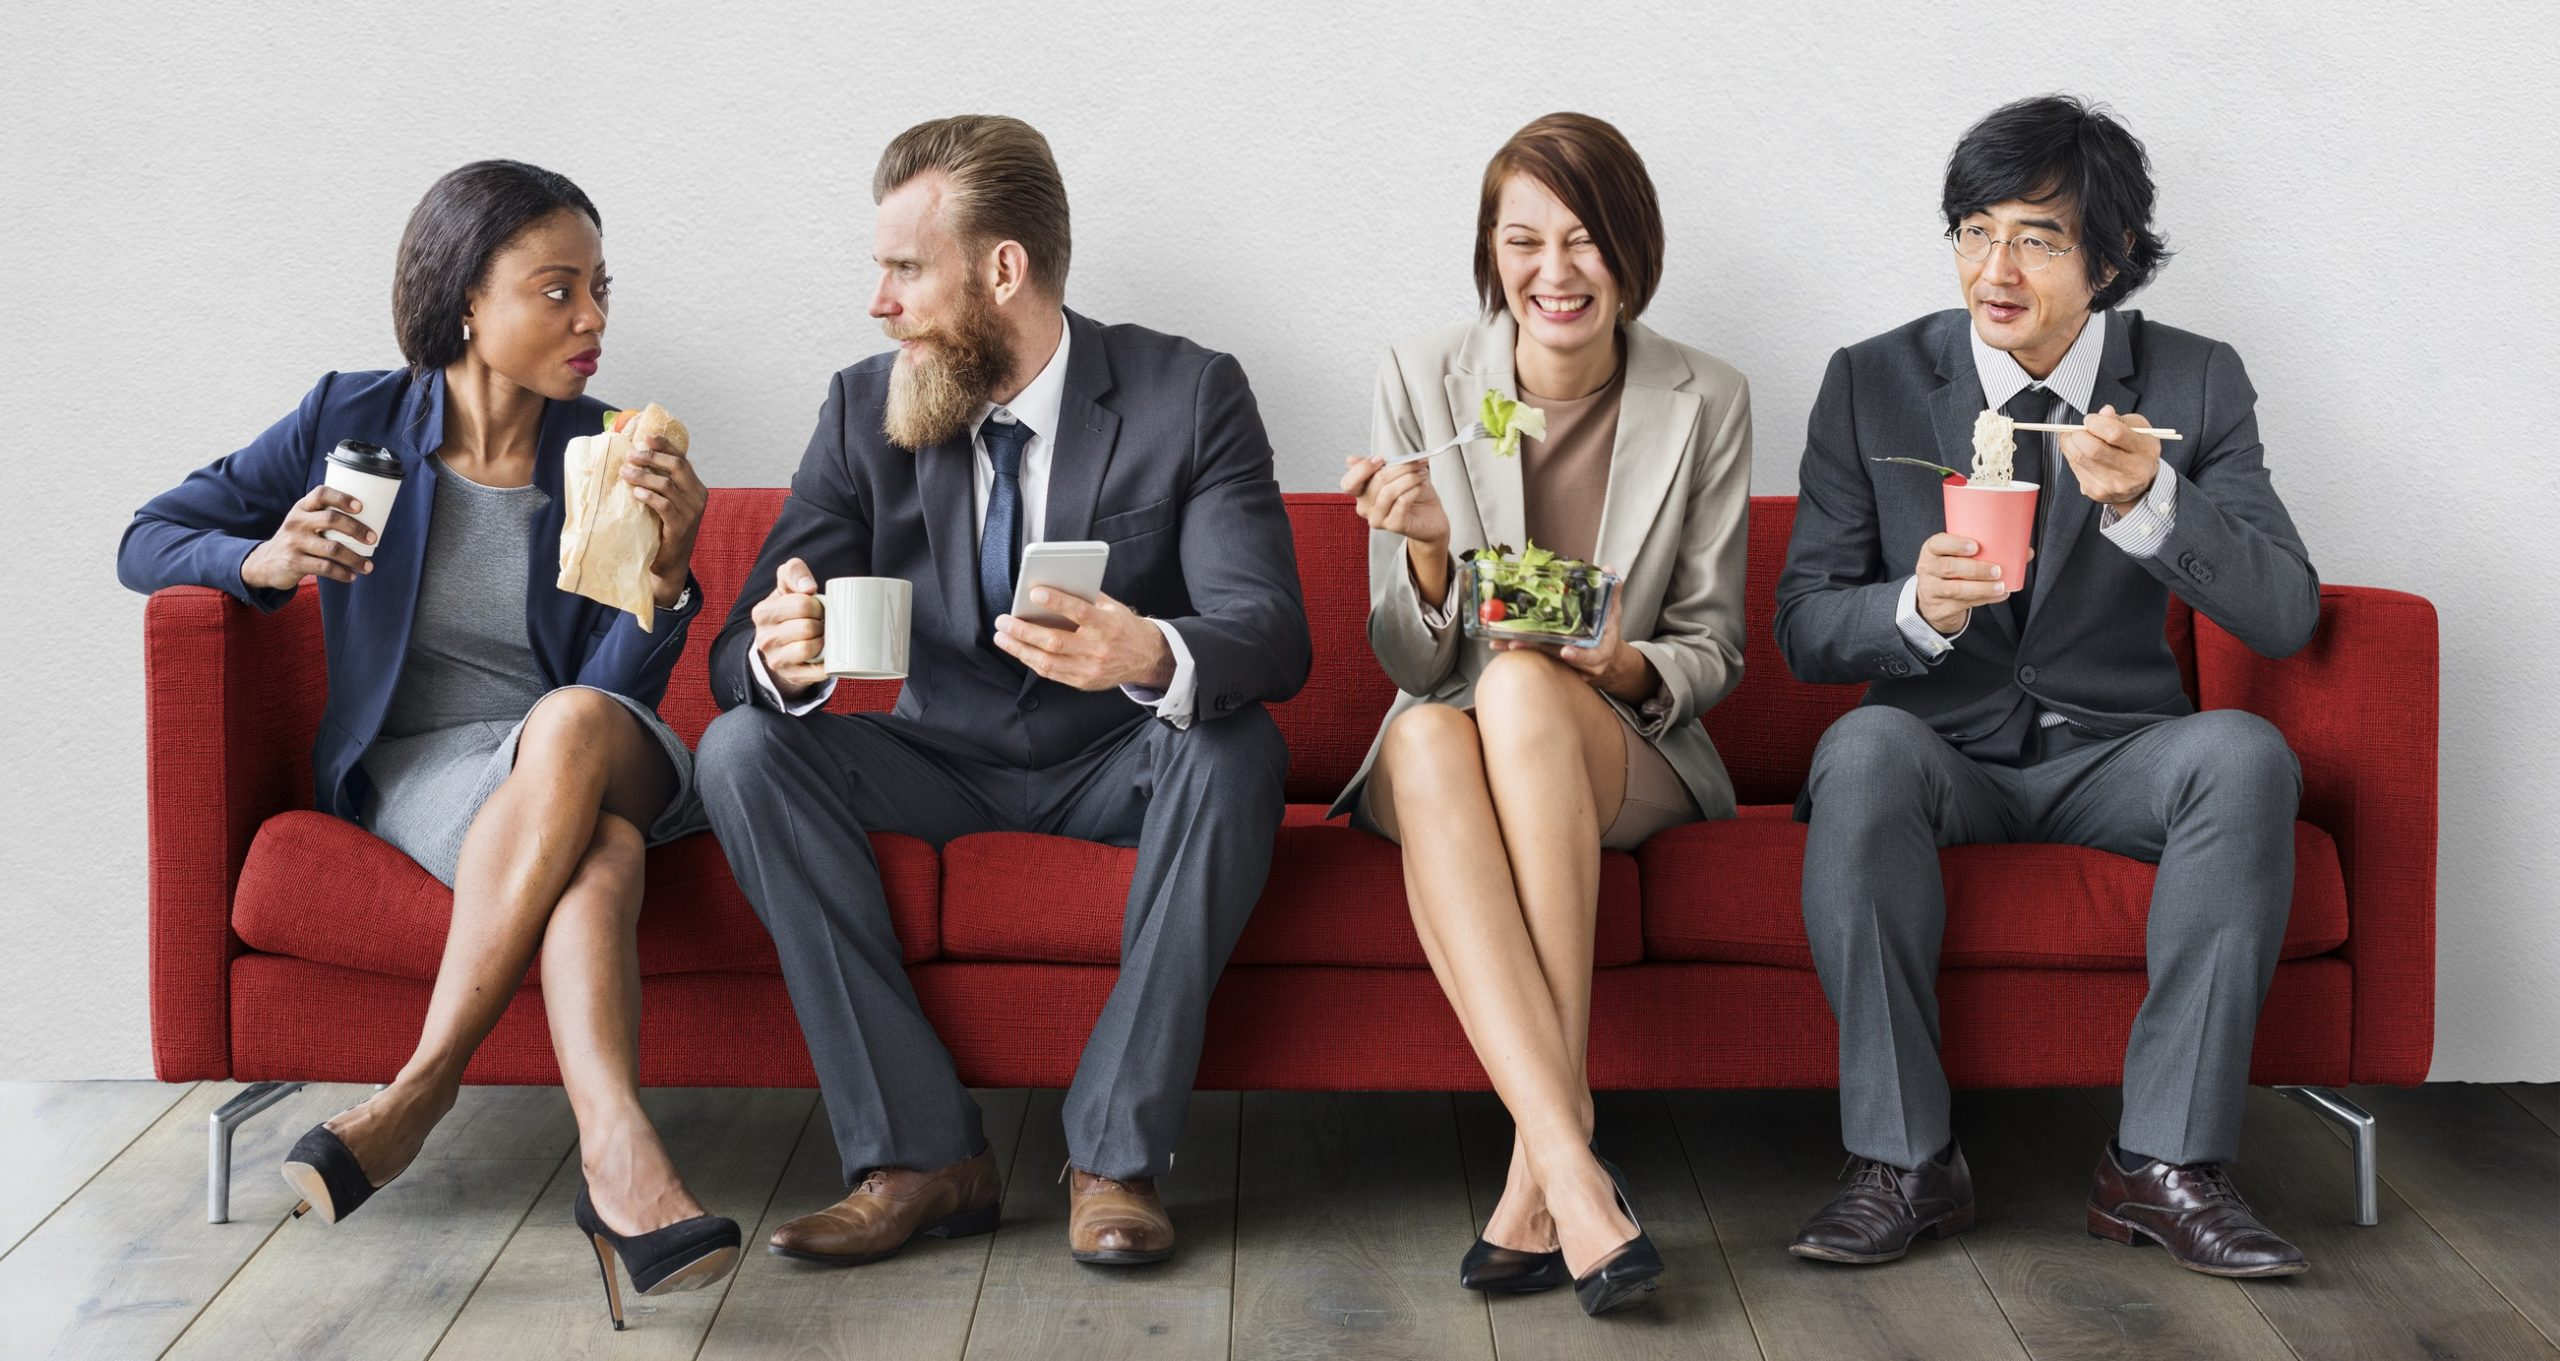 Denver Break Rooms | Promote Productivity | Health and Wellness